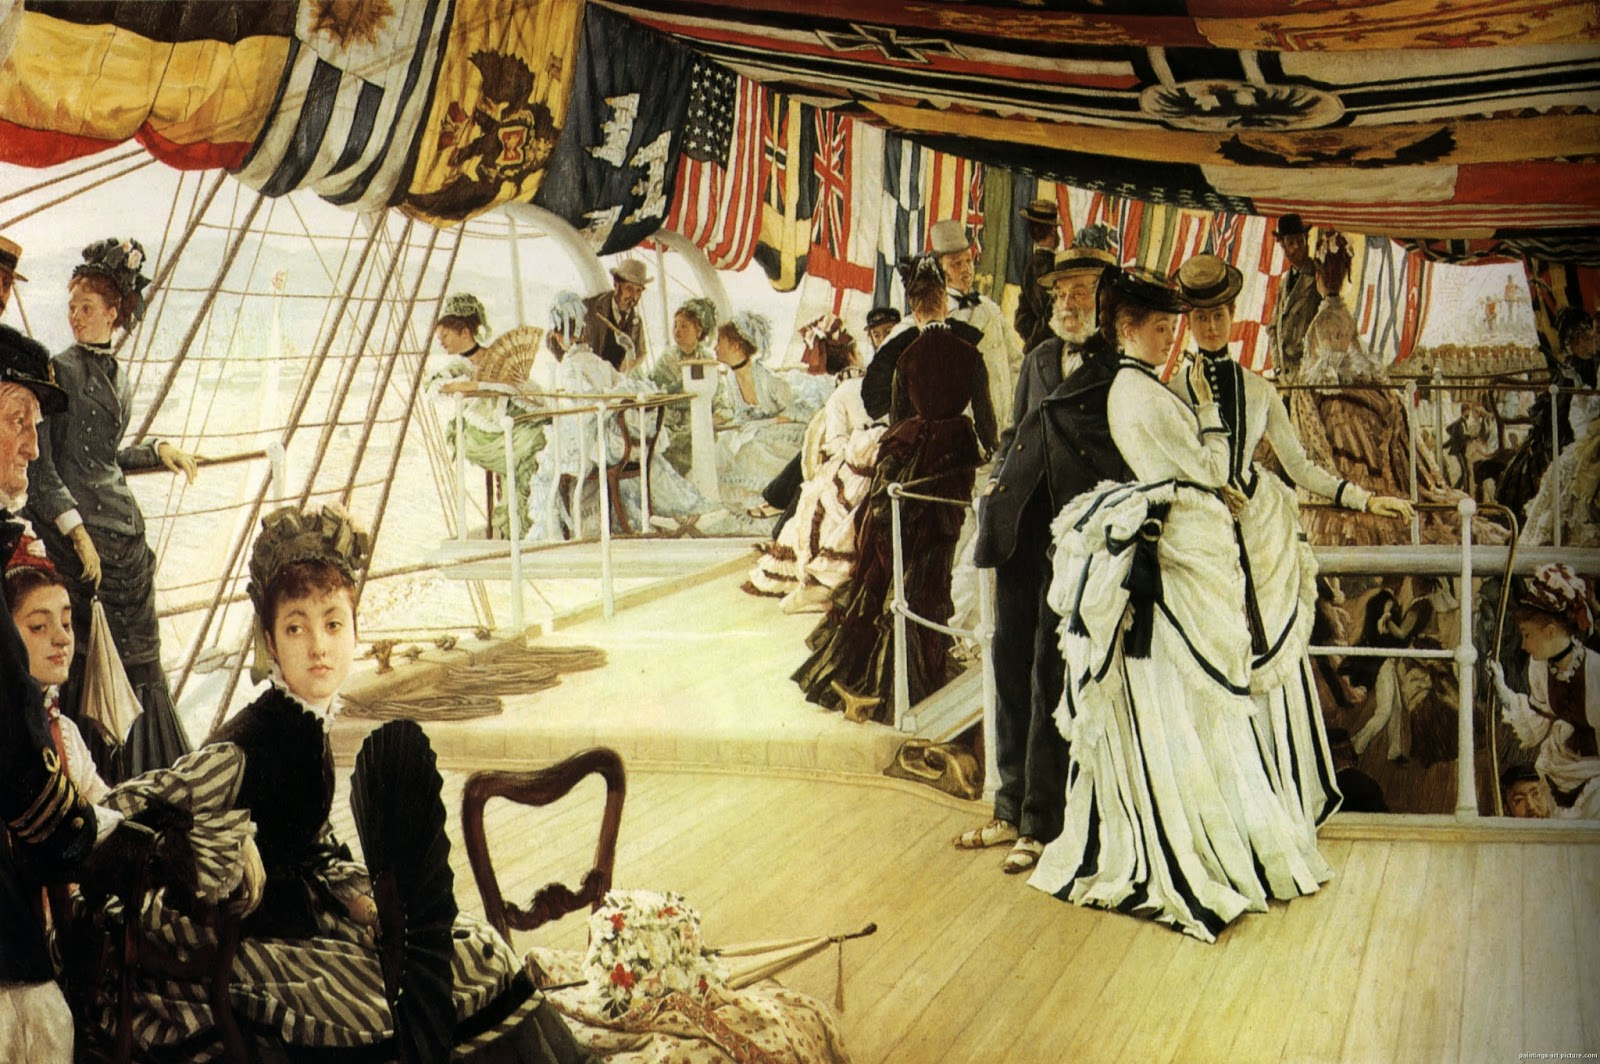 Artist of the Month: Tissot